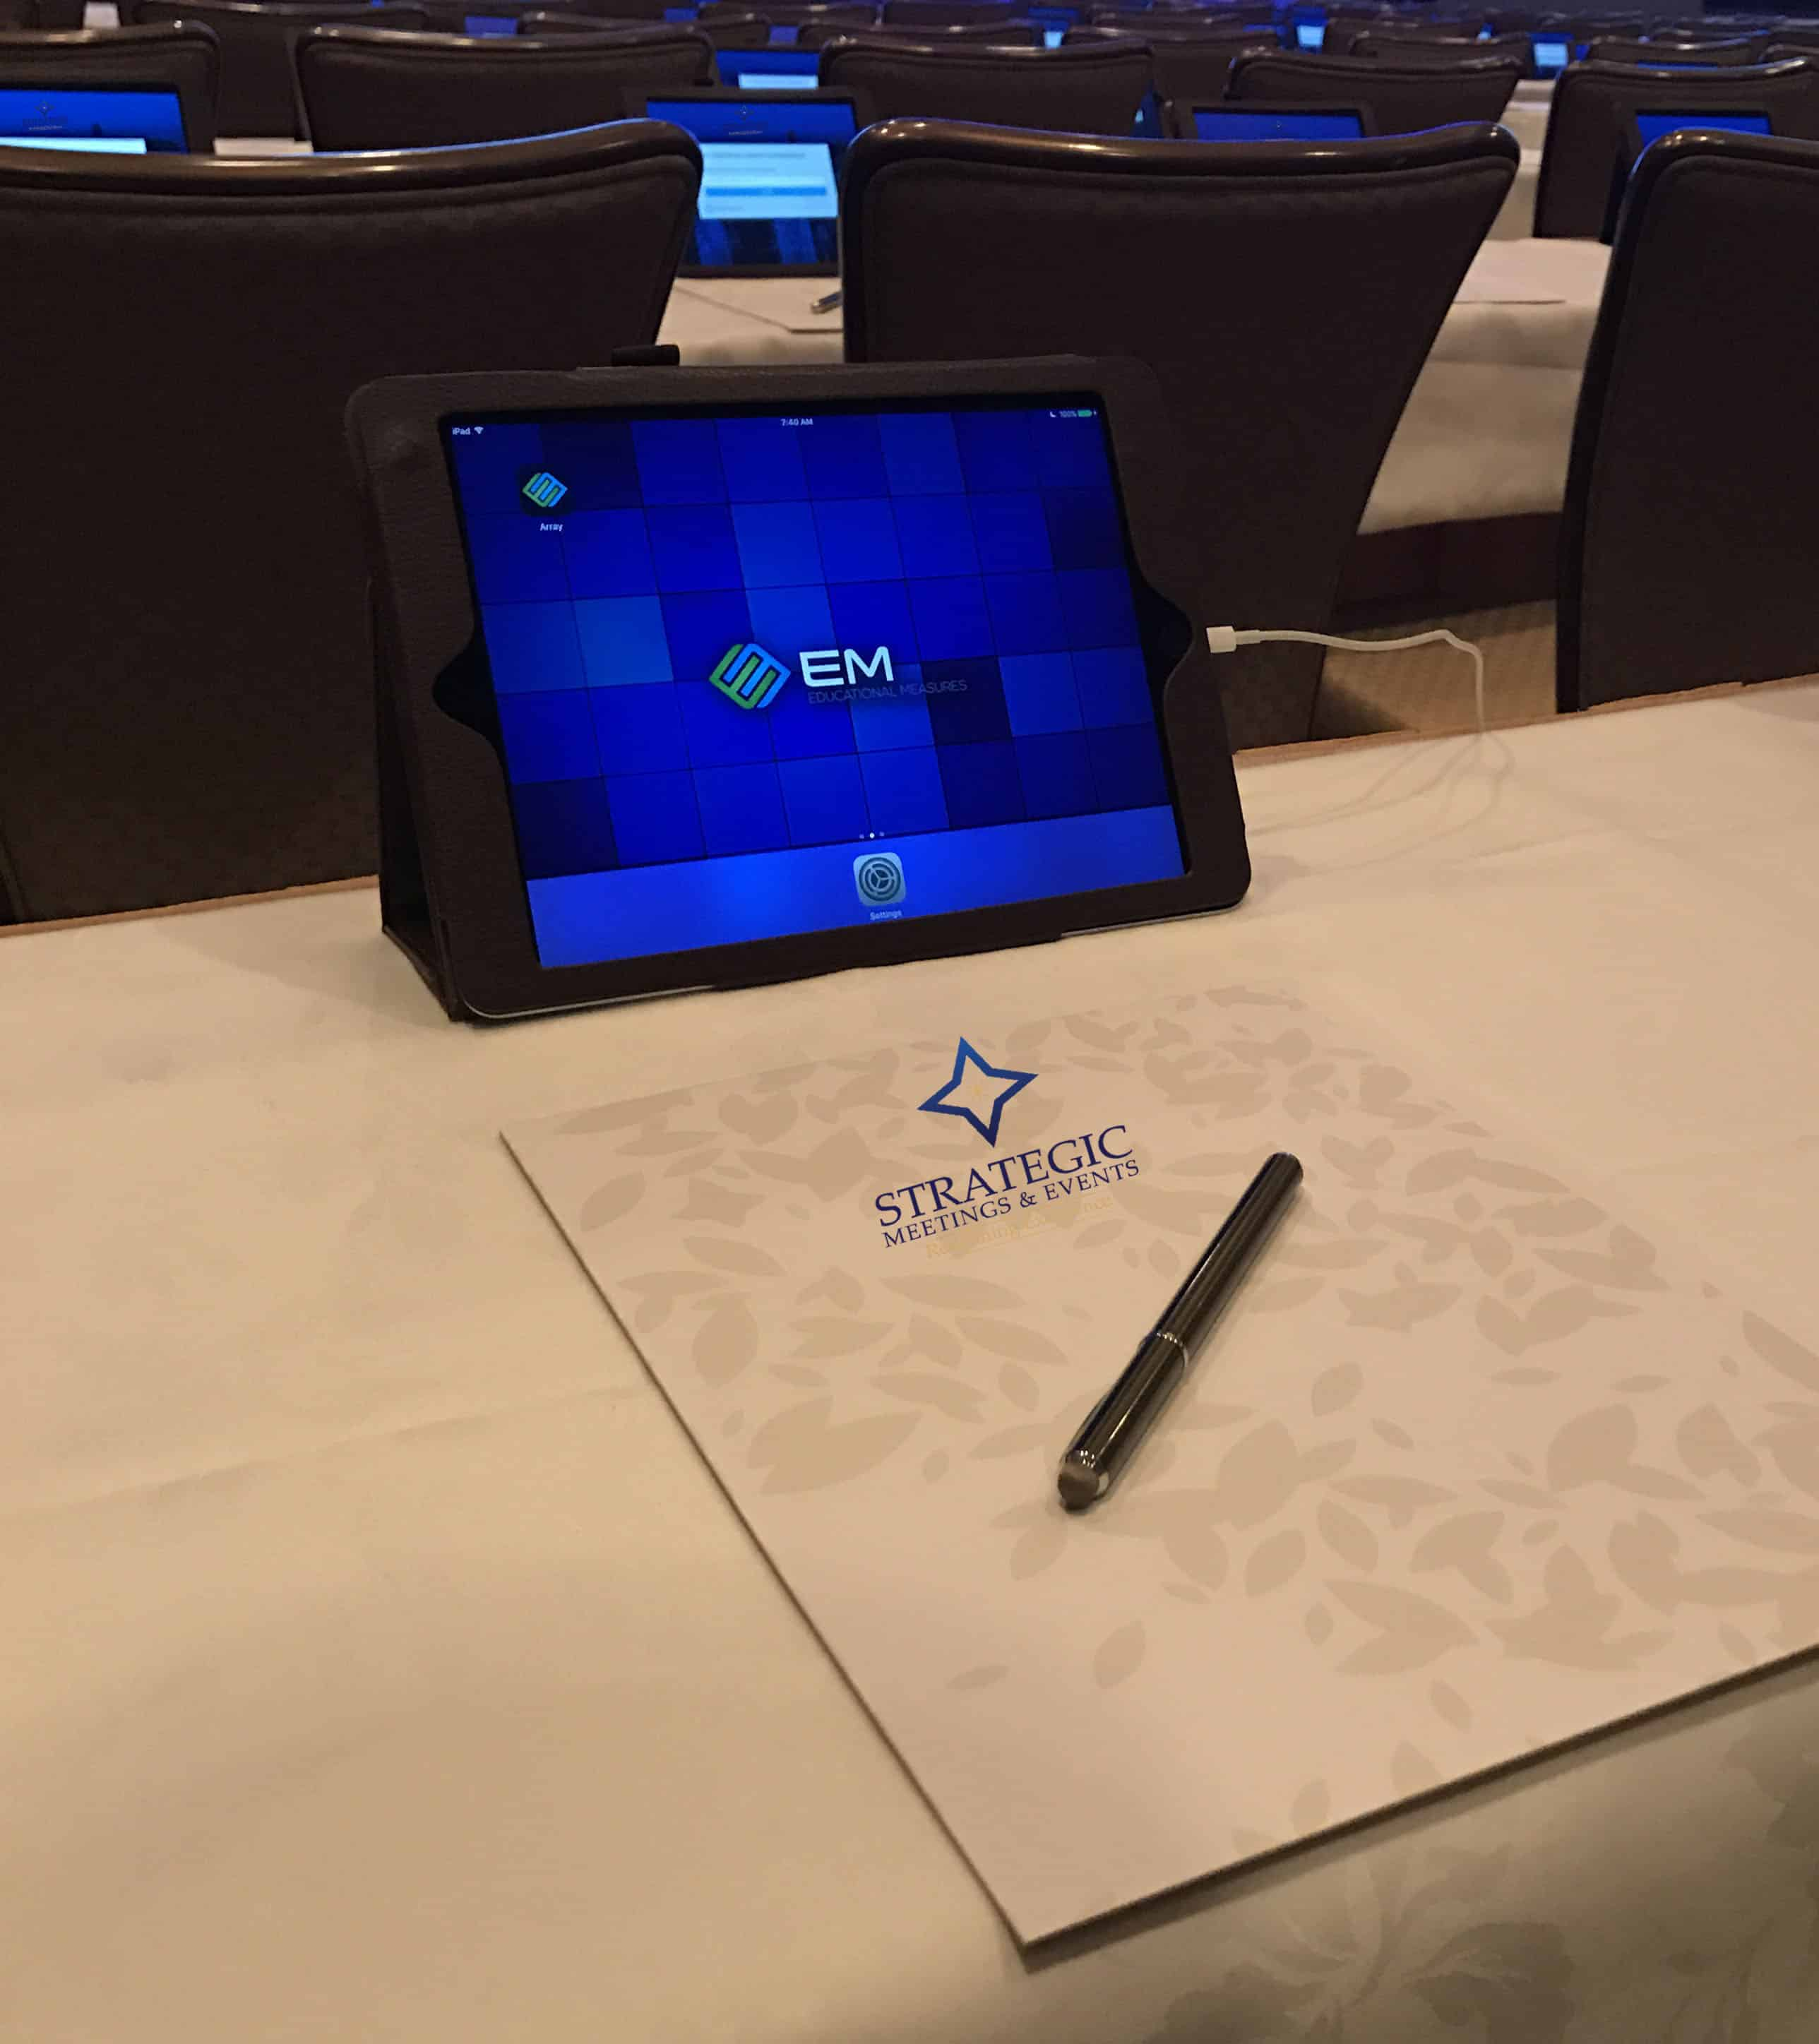 If you want to achieve the holy trinity of savings—time, money, and the environment—it's time to adopt e-content. Interactive iPads are a natural evolution in the process of going paperless at meetings. Getting Out of a Bind(er): Elevating The Live Meeting Experience